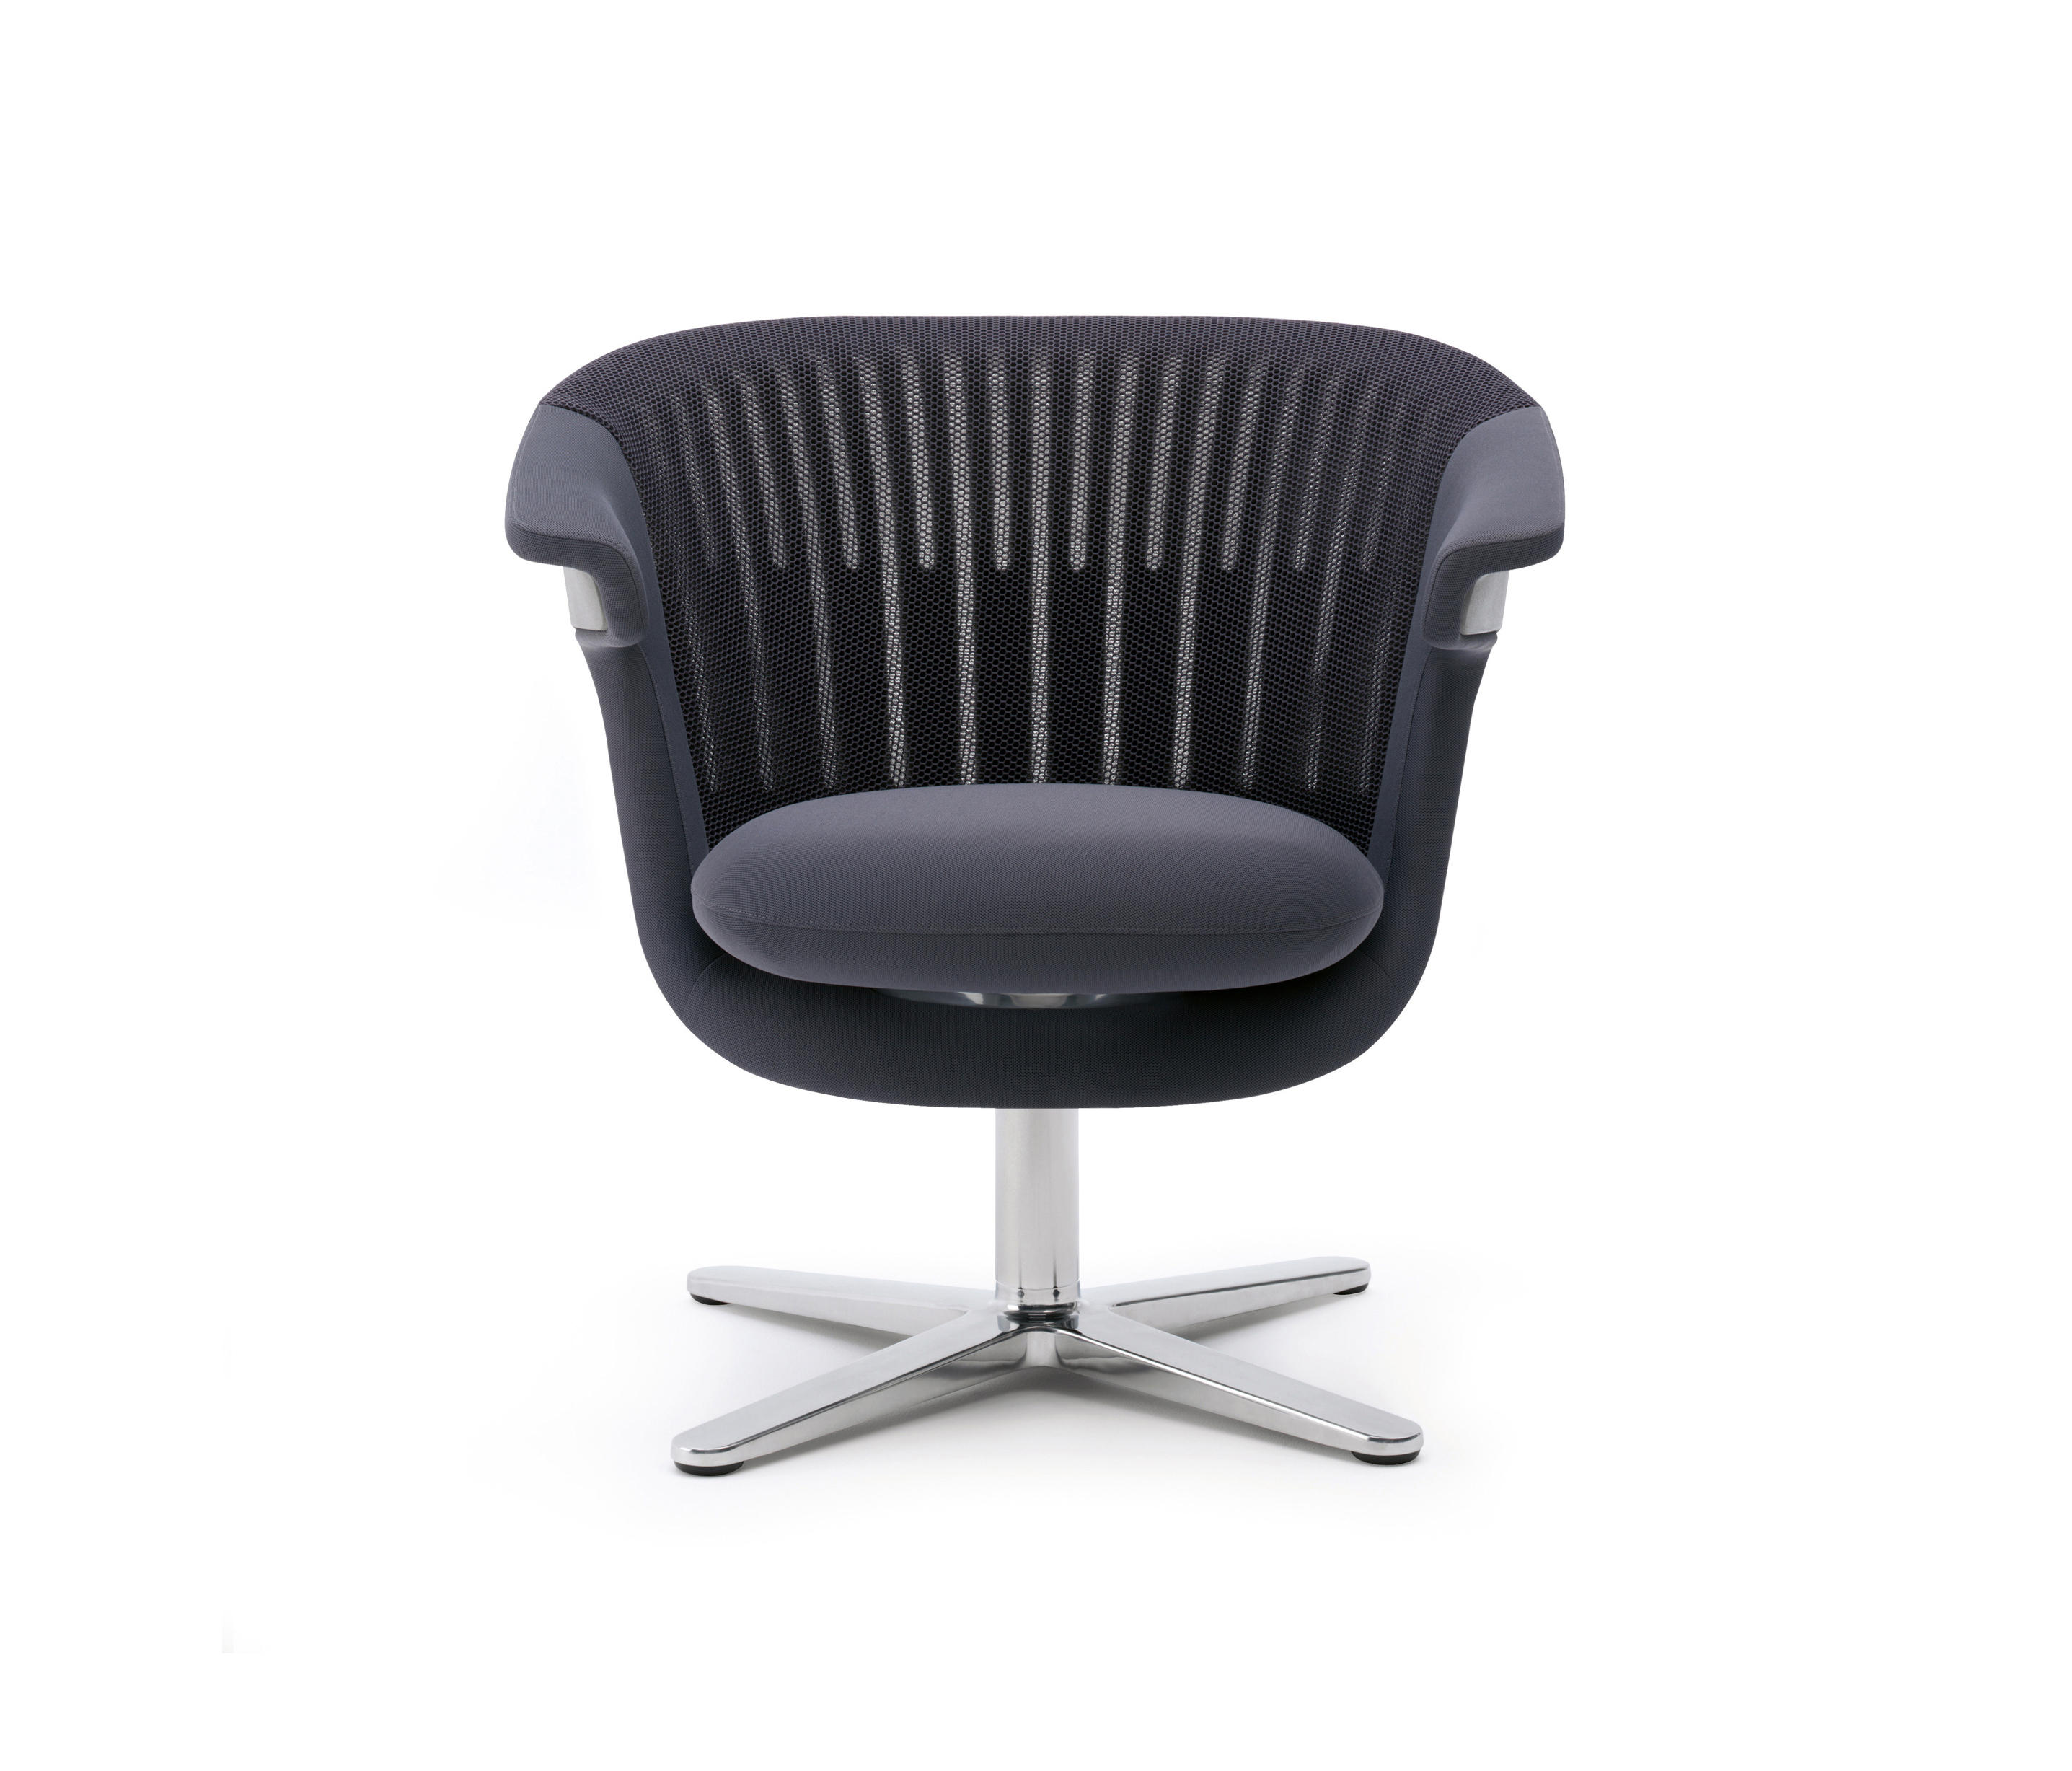 Fauteuils Steelcase I2i Chair Armchairs From Steelcase Architonic